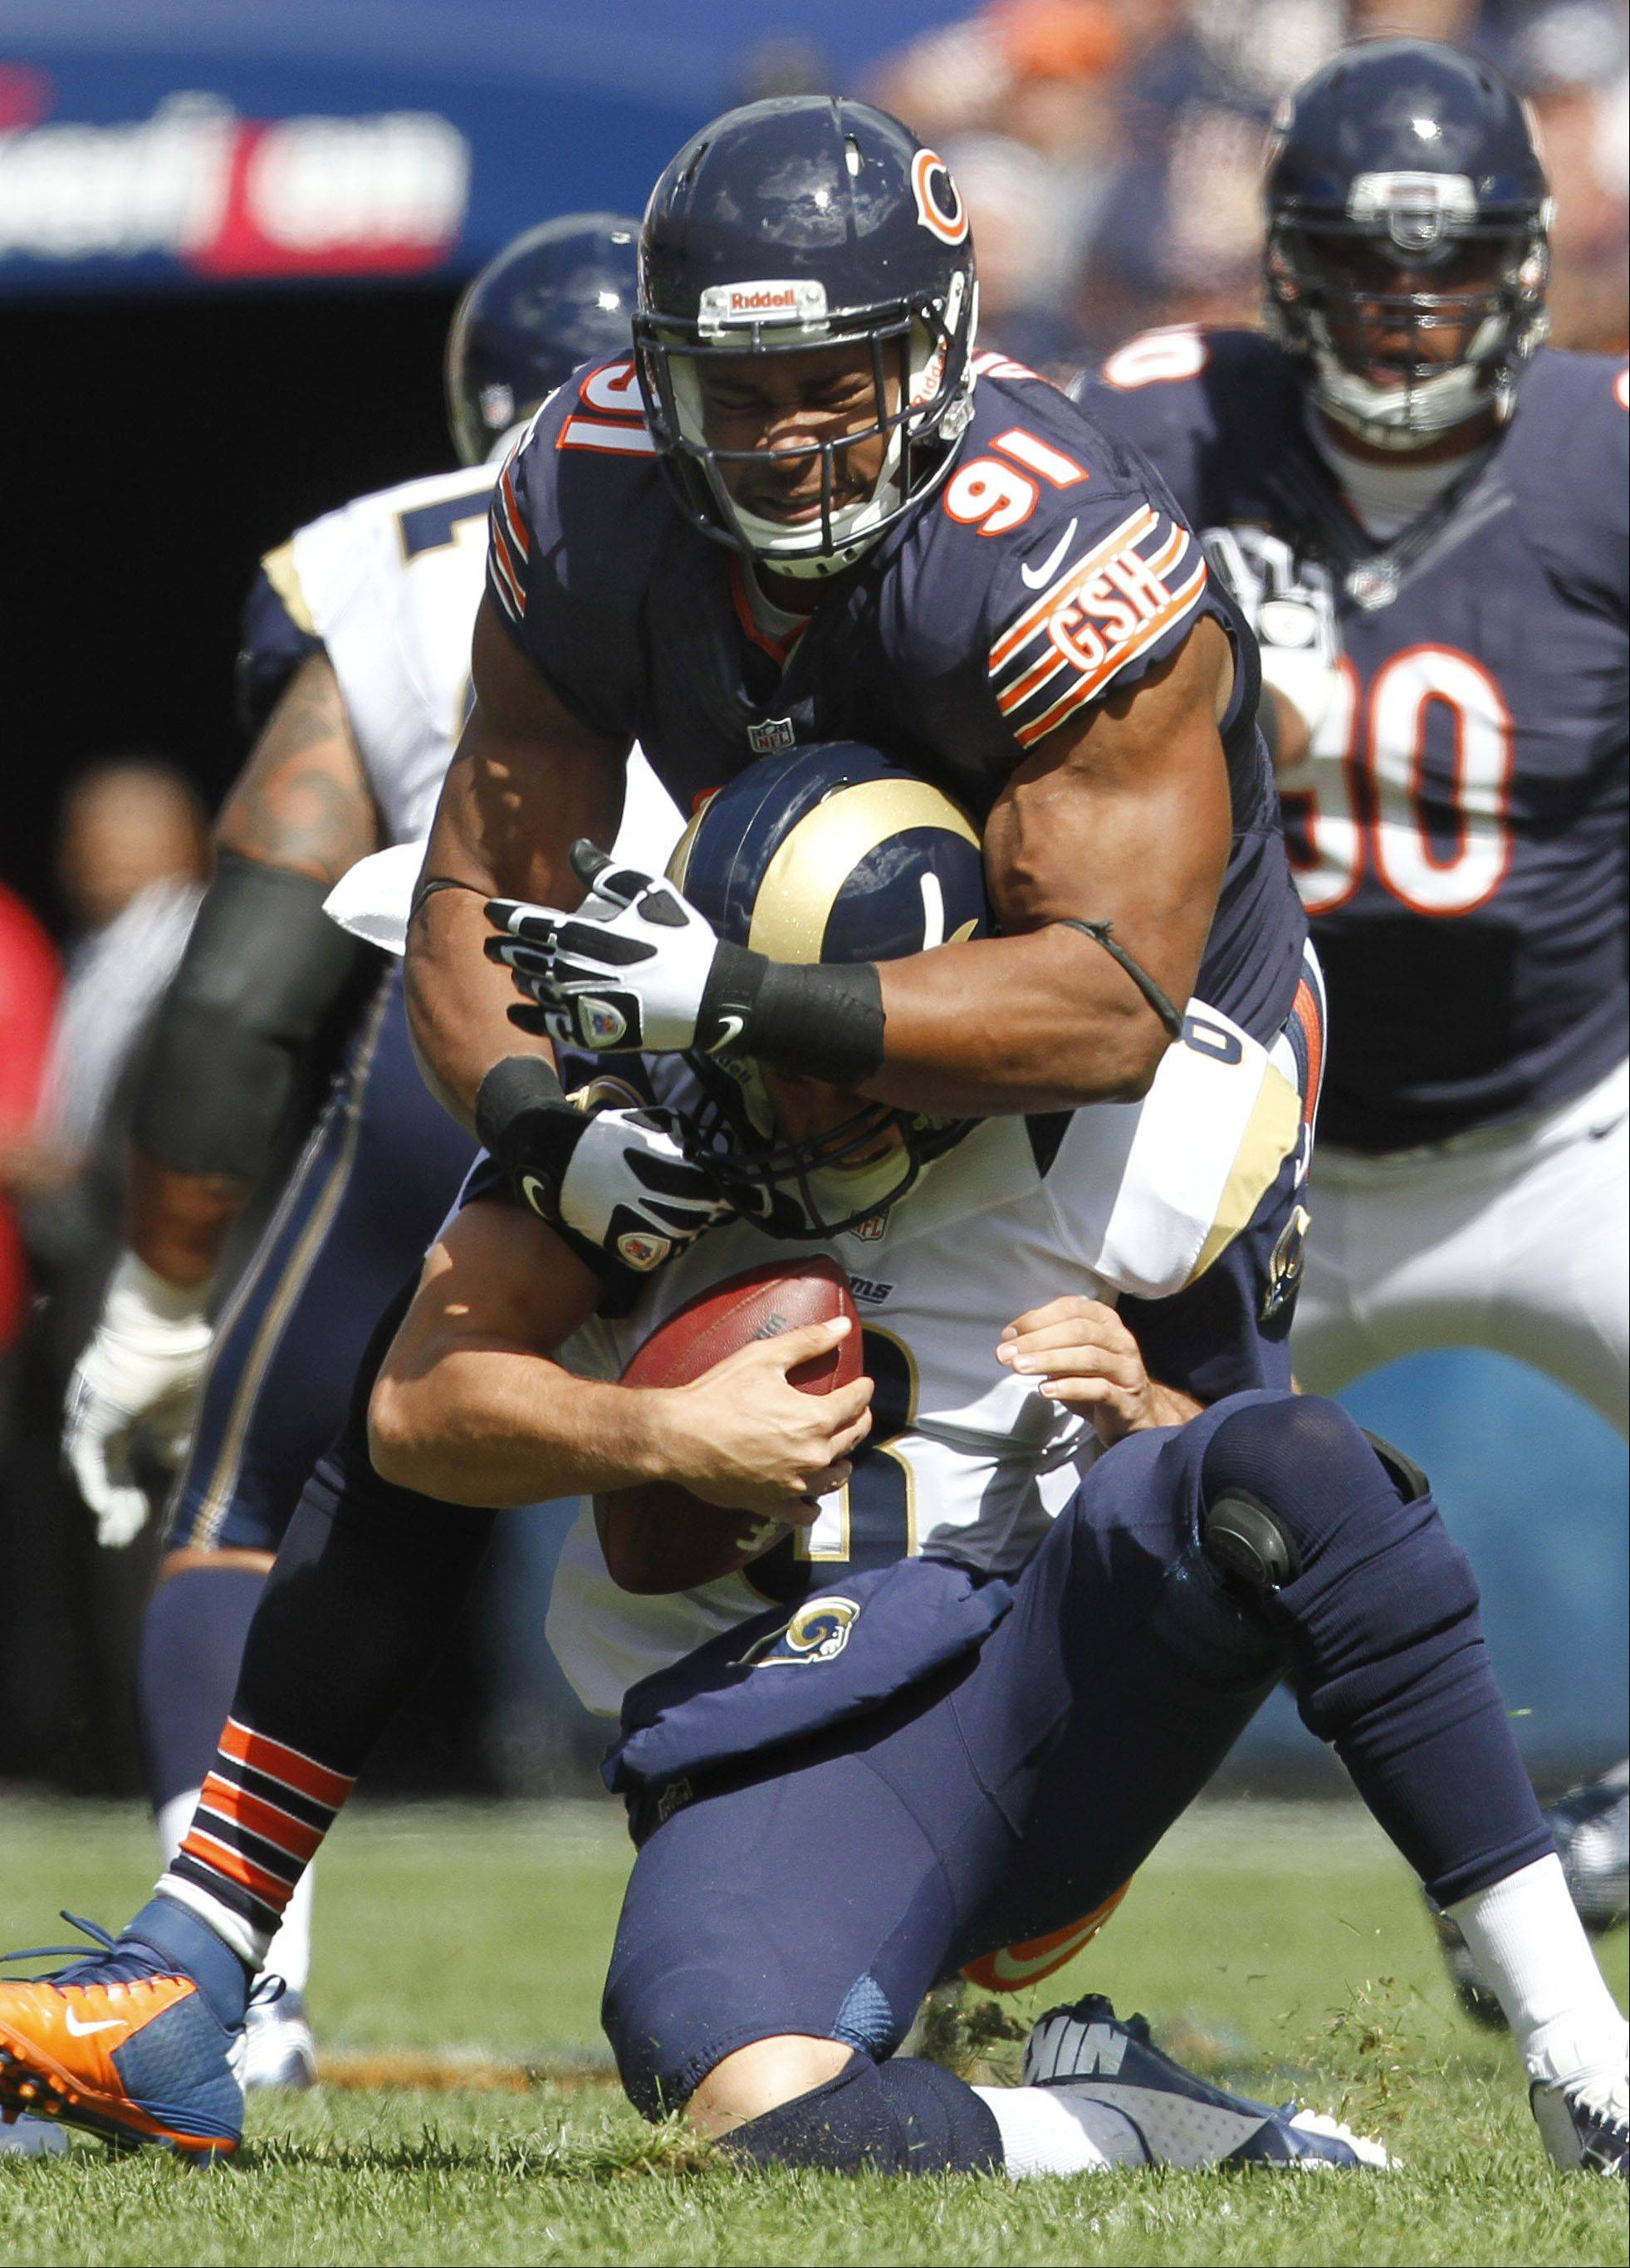 Chicago Bears defensive tackle Amobi Okoye sacks St. Louis Rams quarterback Sam Bradford in the first half against the St. Louis Rams Sunday at Soldier Field in Chicago.